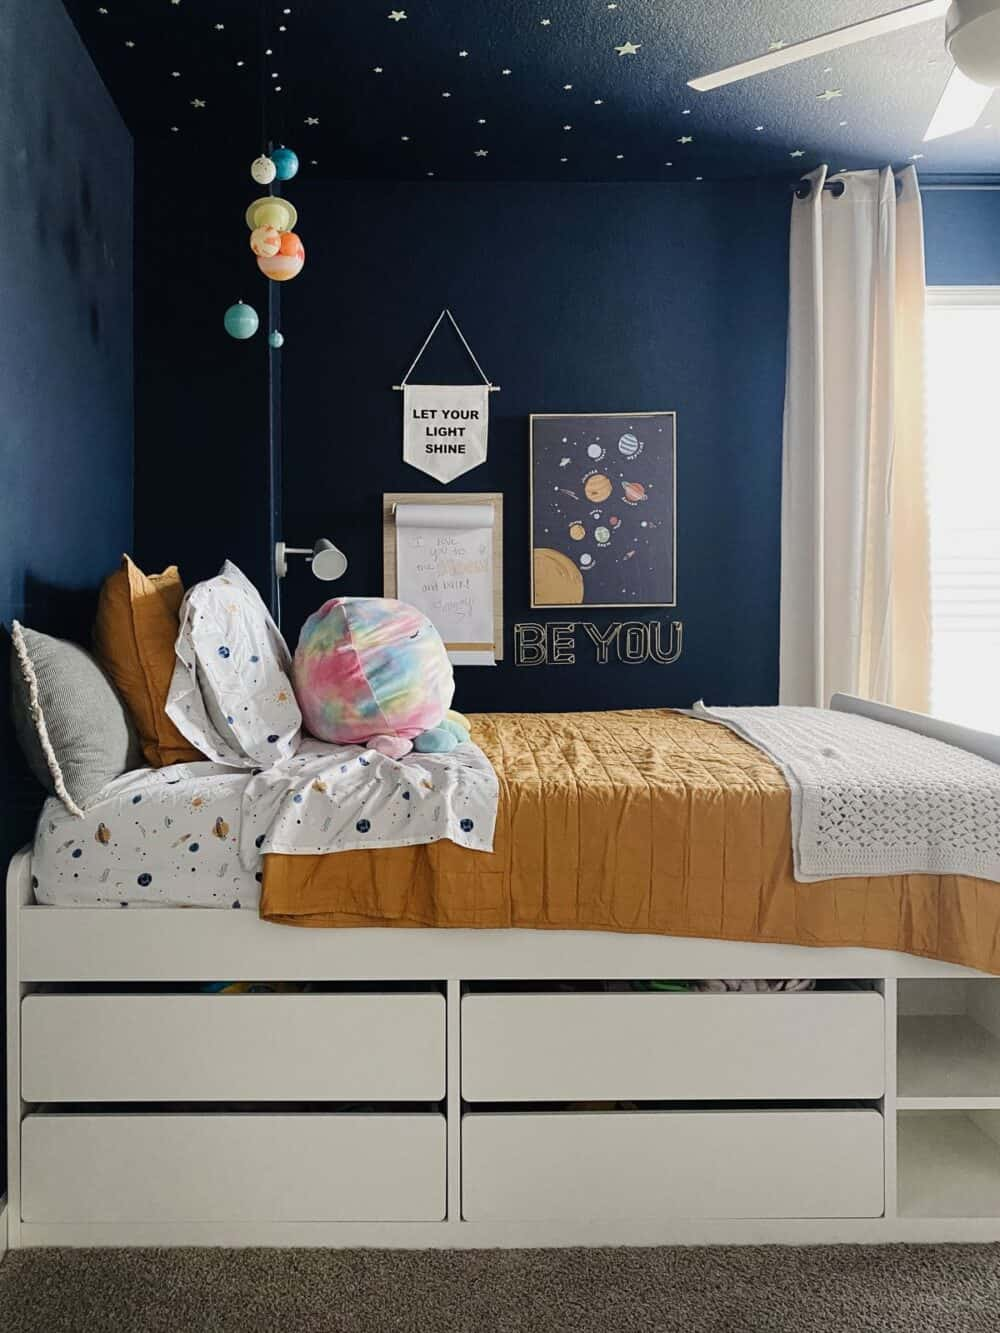 bed and bedding in a space themed bedroom